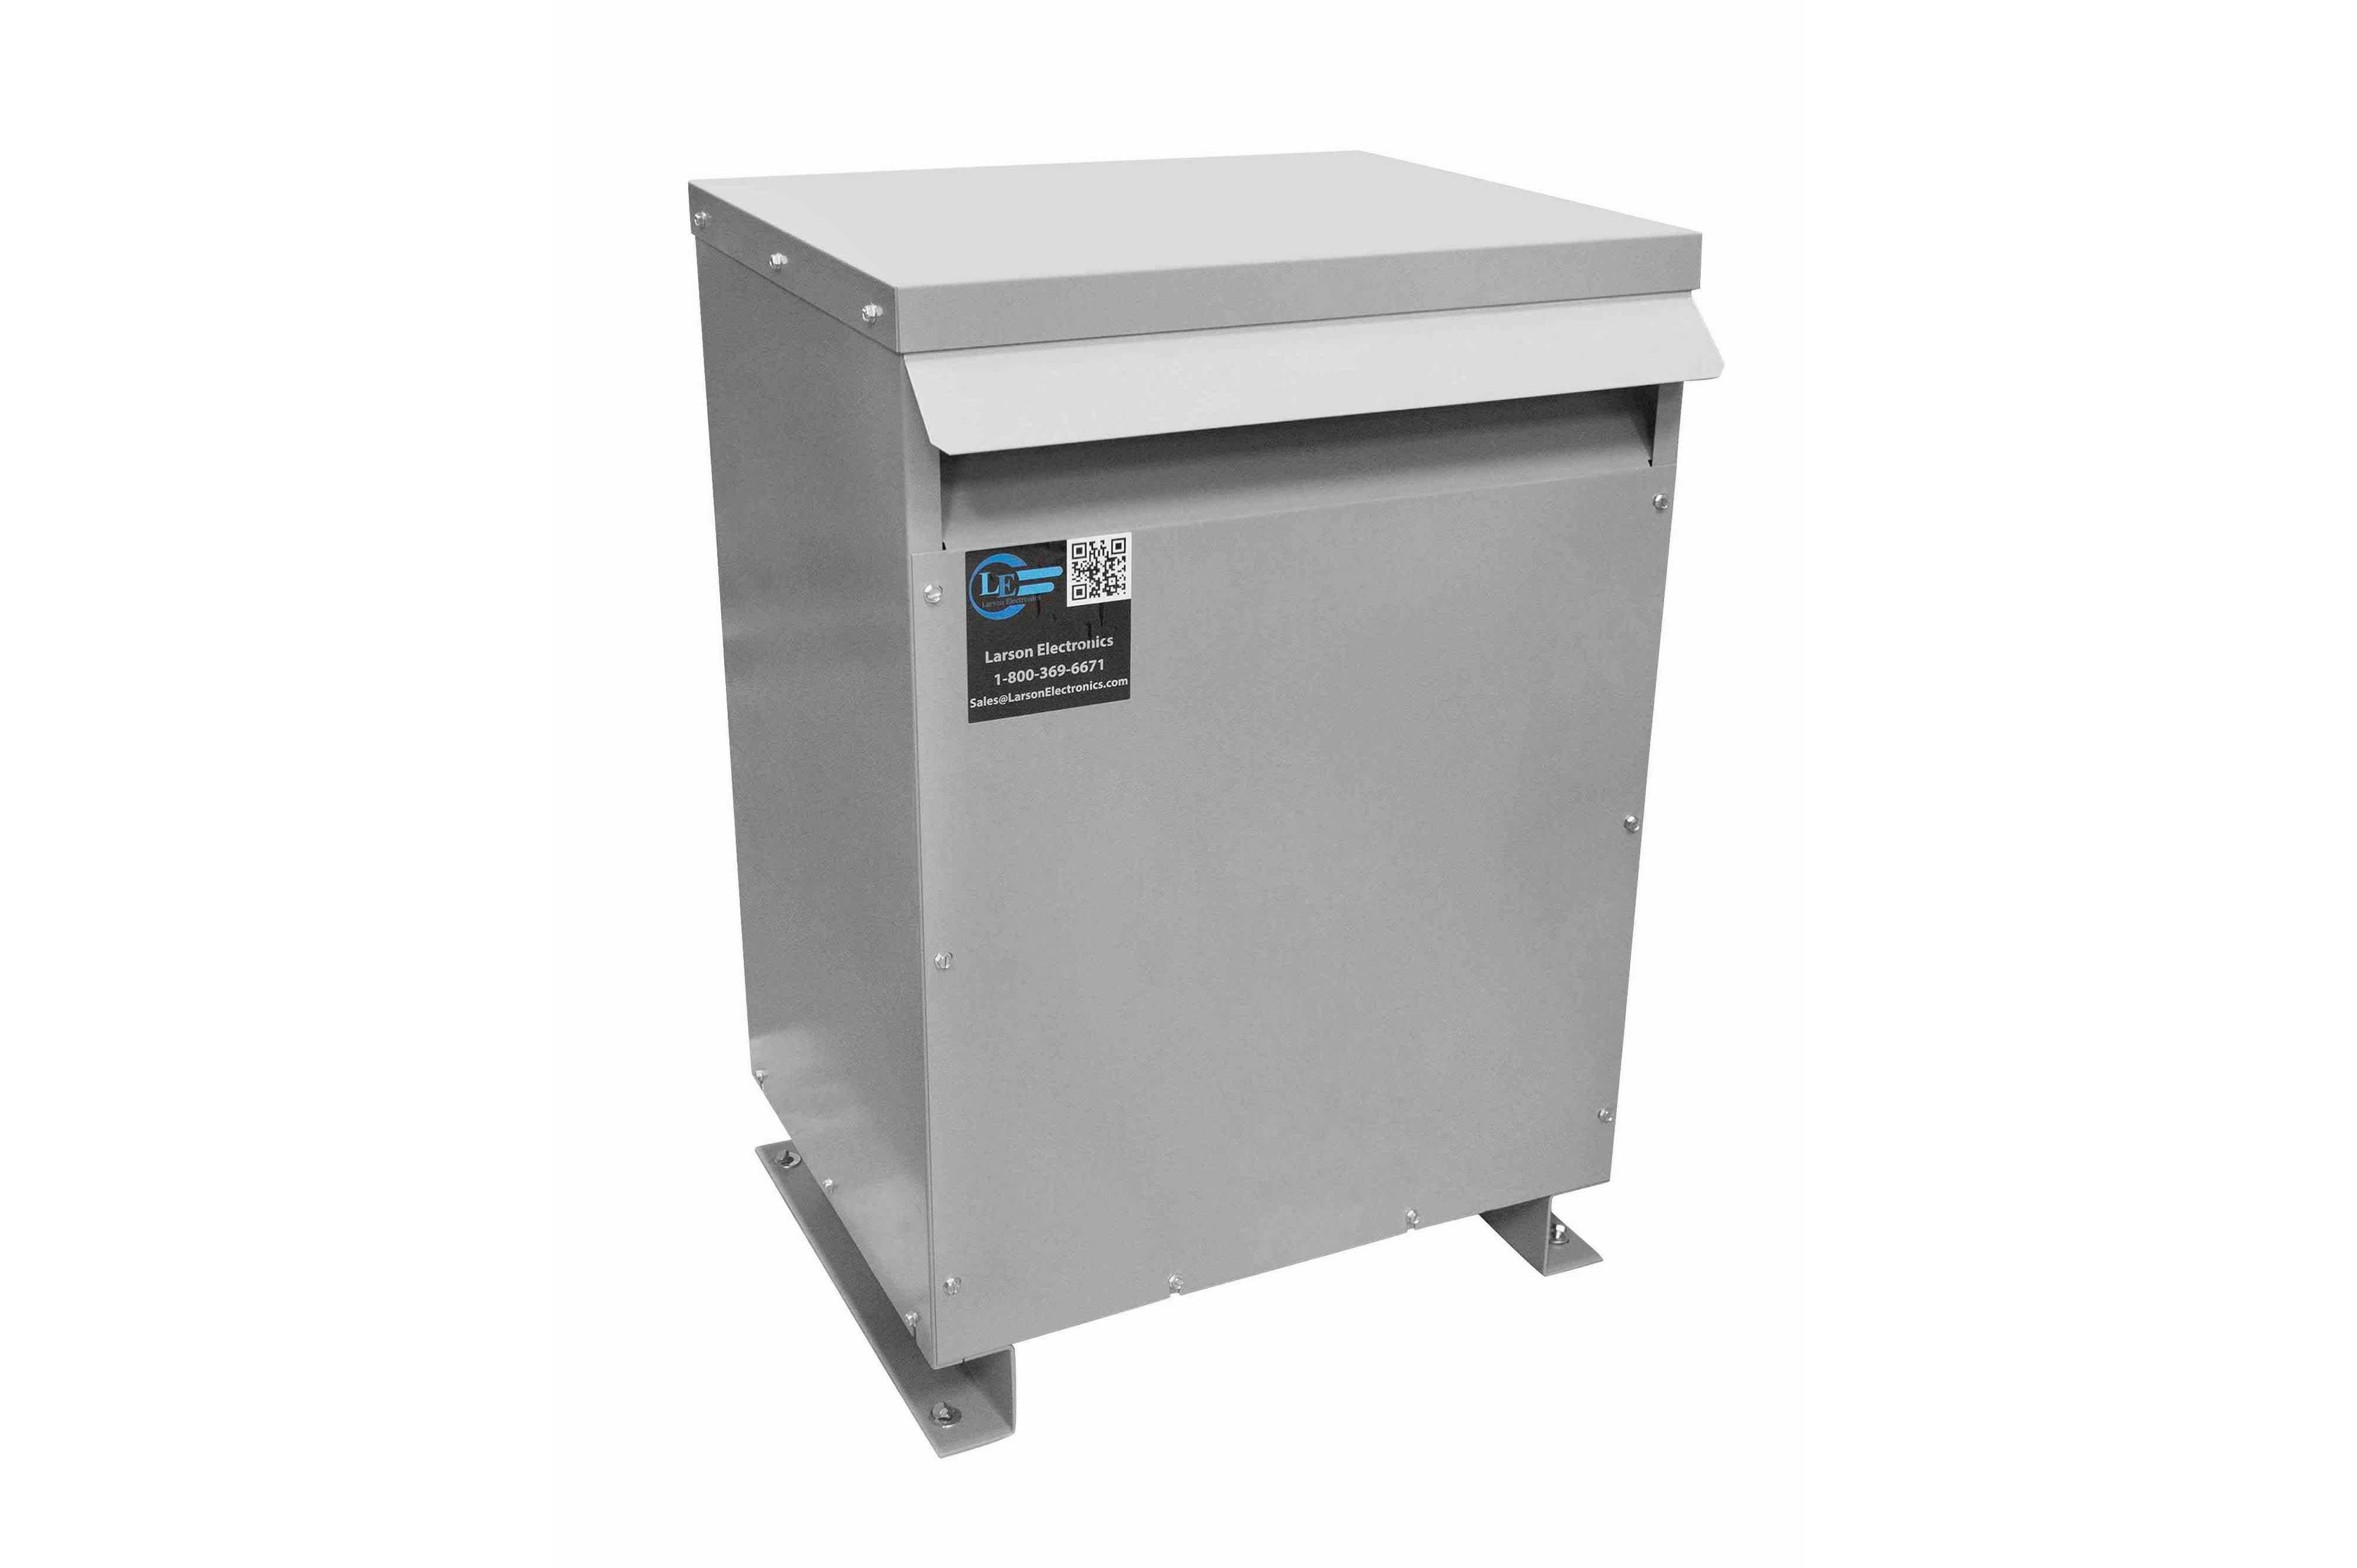 225 kVA 3PH Isolation Transformer, 415V Wye Primary, 240V/120 Delta Secondary, N3R, Ventilated, 60 Hz